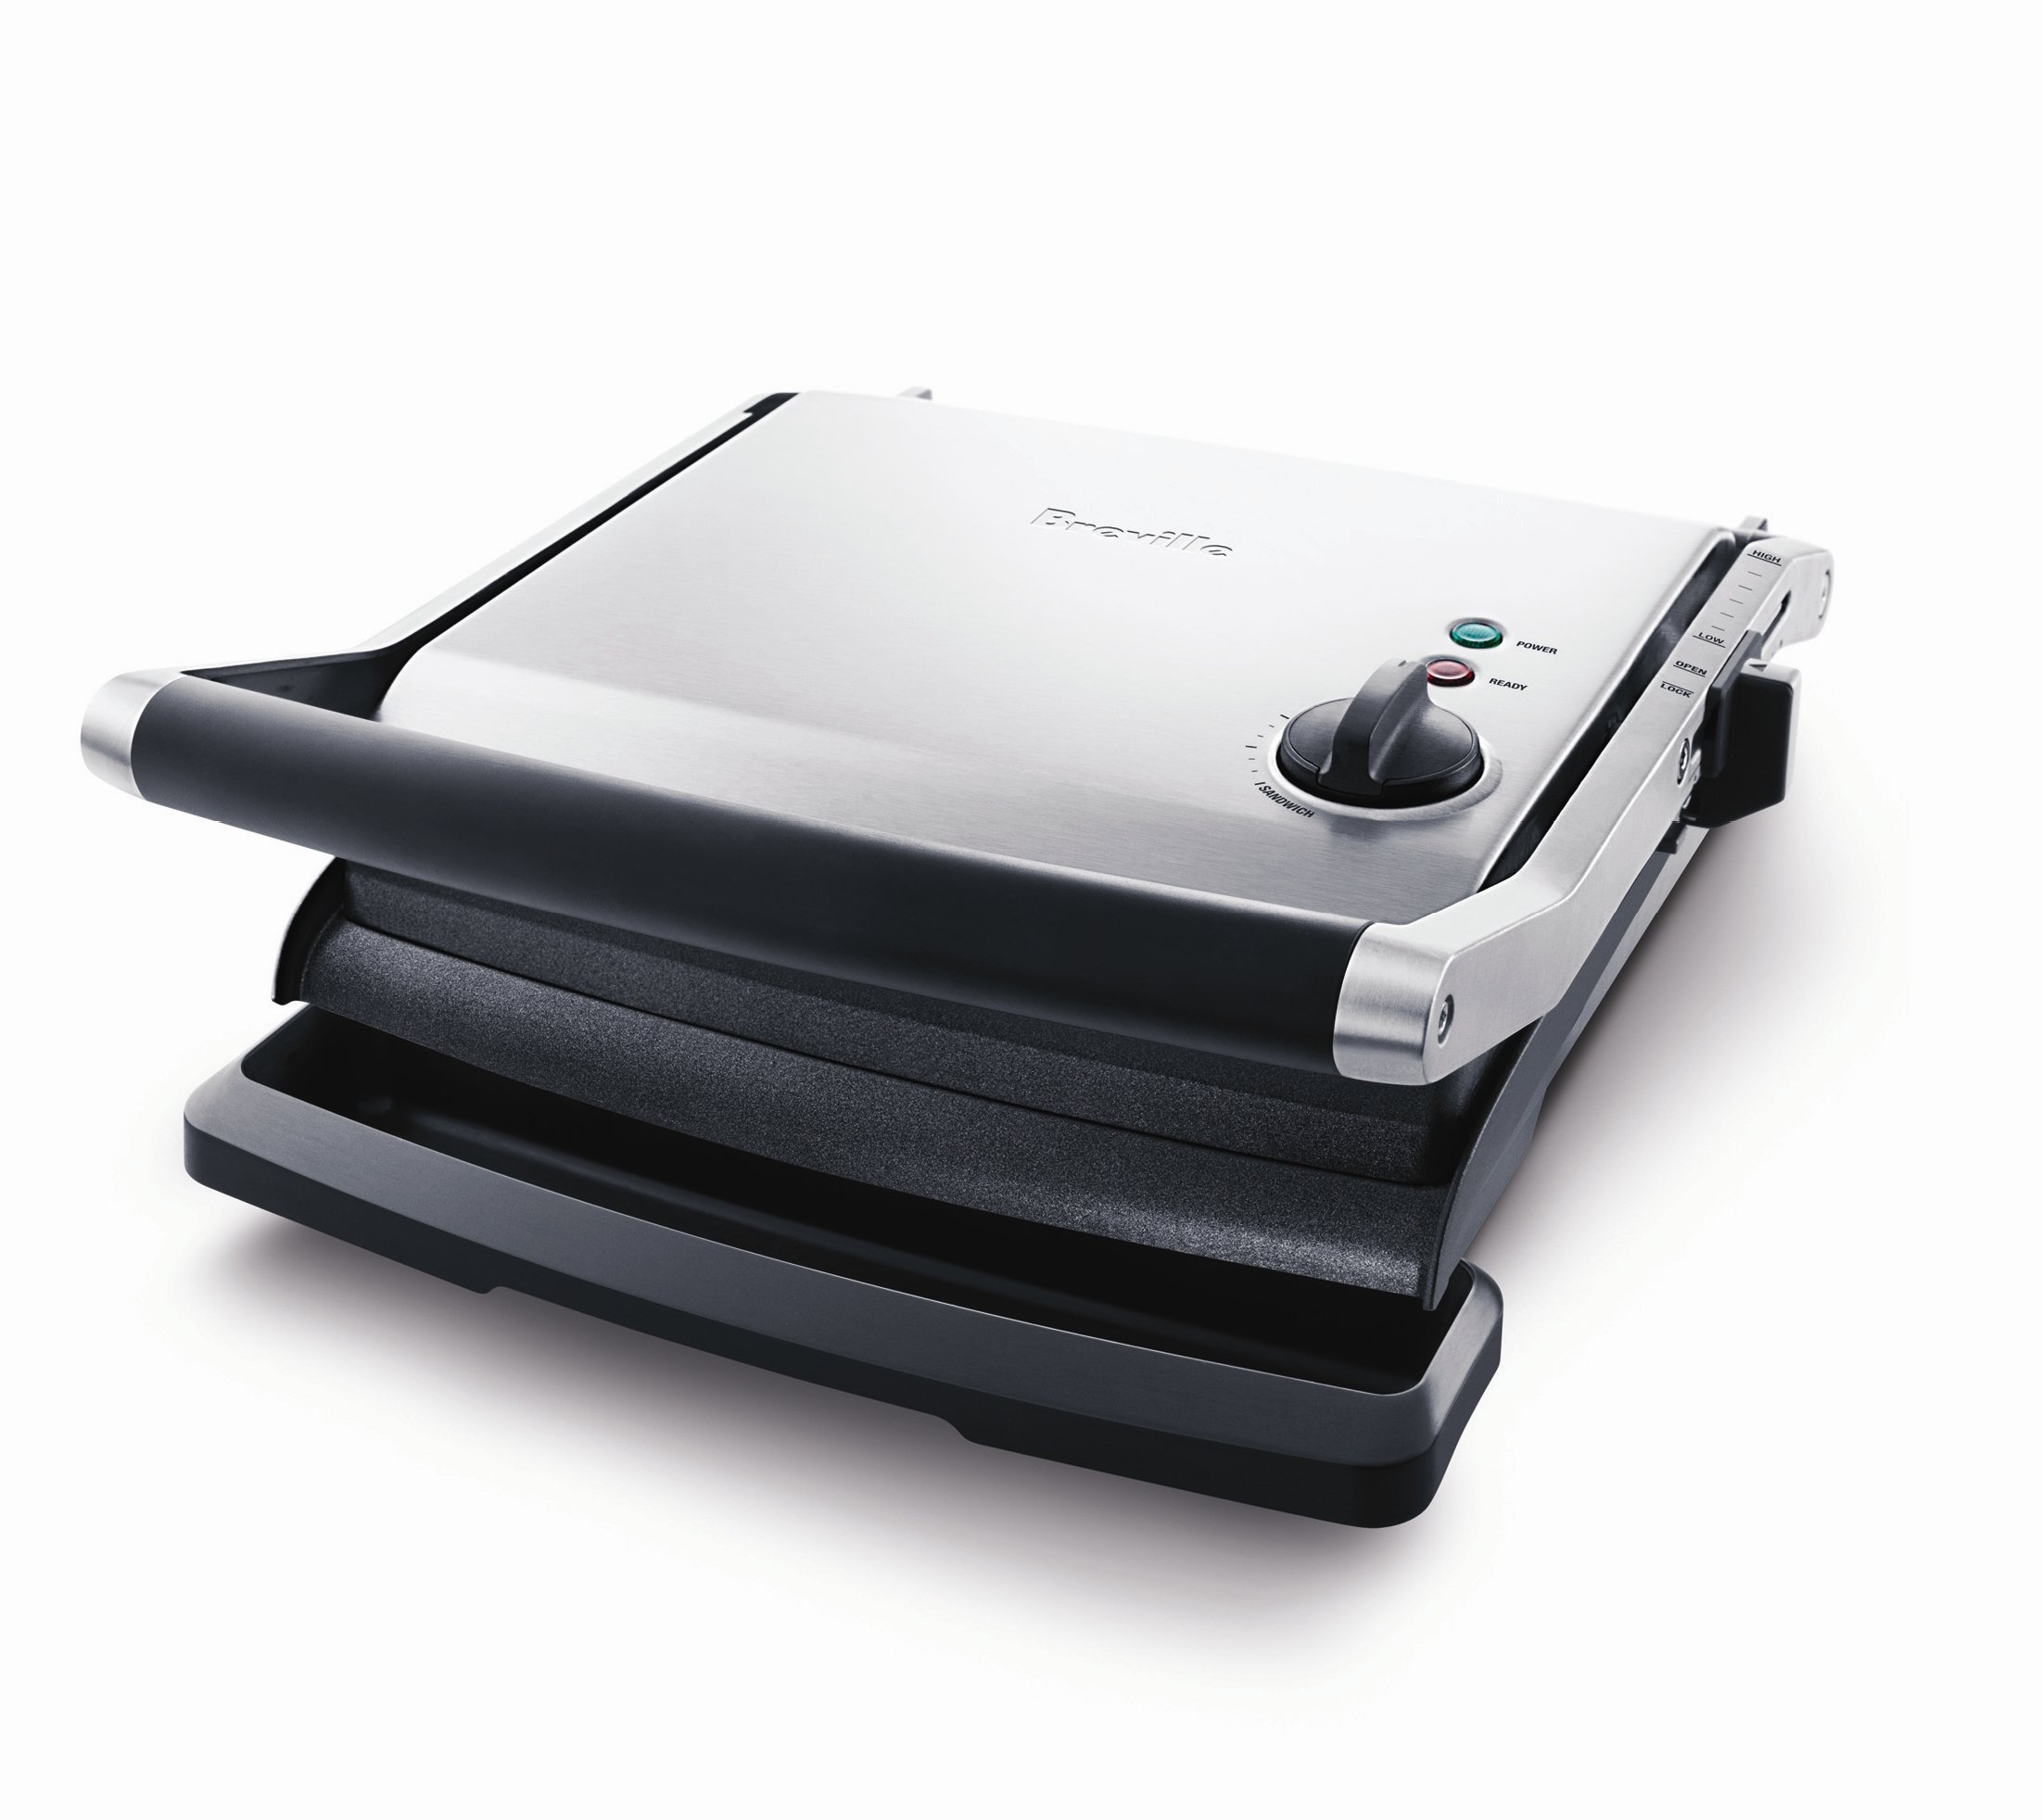 Breville BGR200XL Variable Temperature Panini Grill by Breville